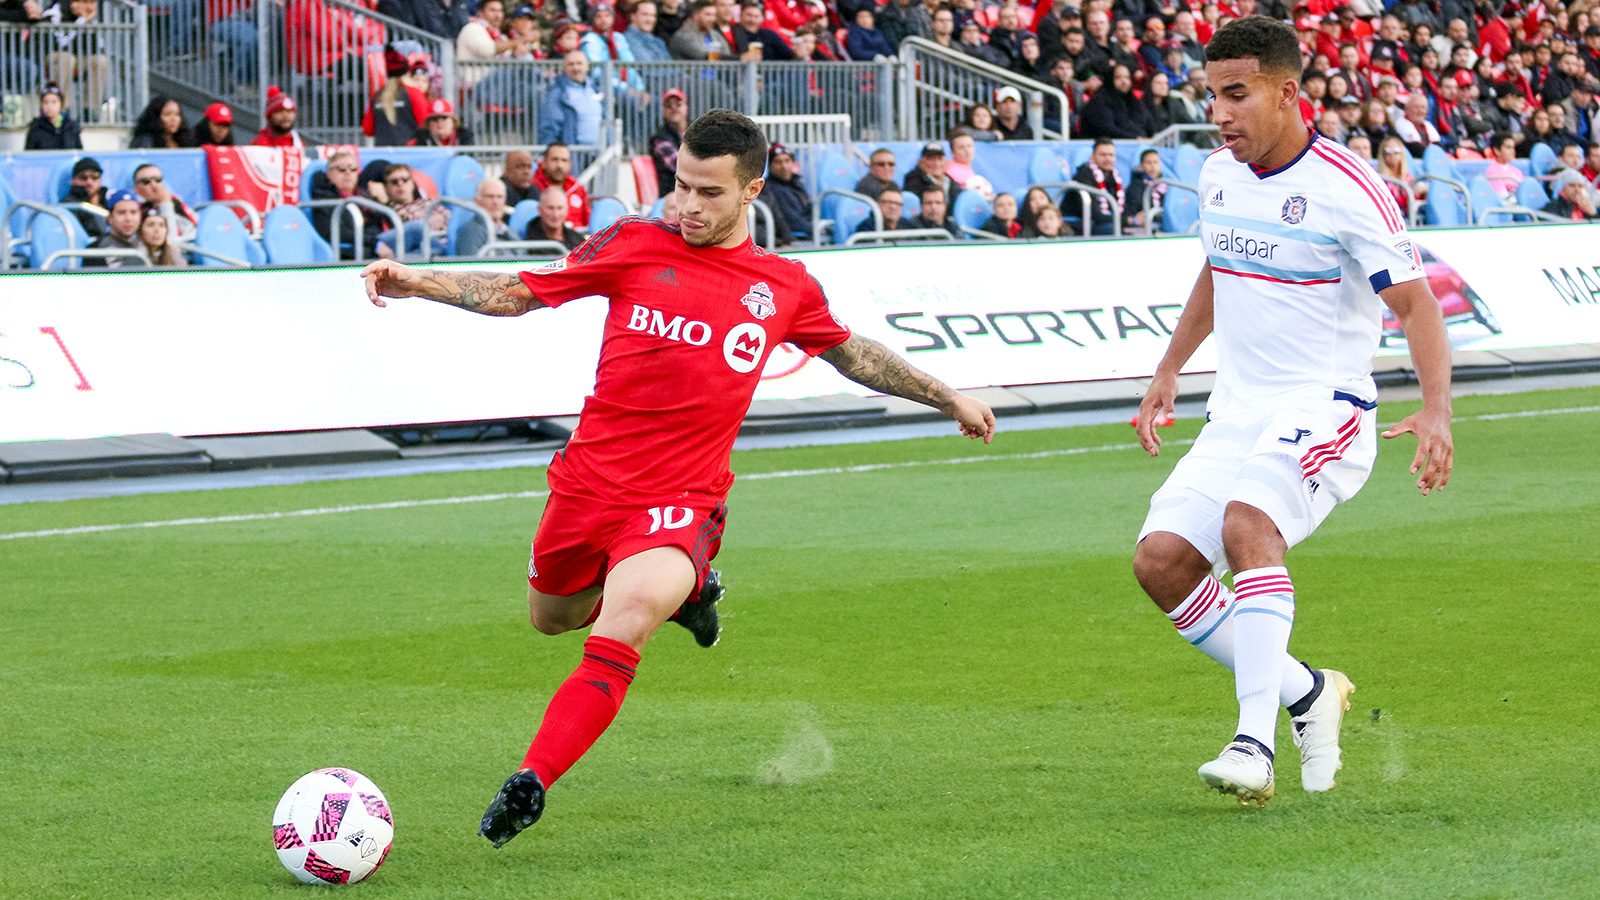 Giovinco takes a shot on target.